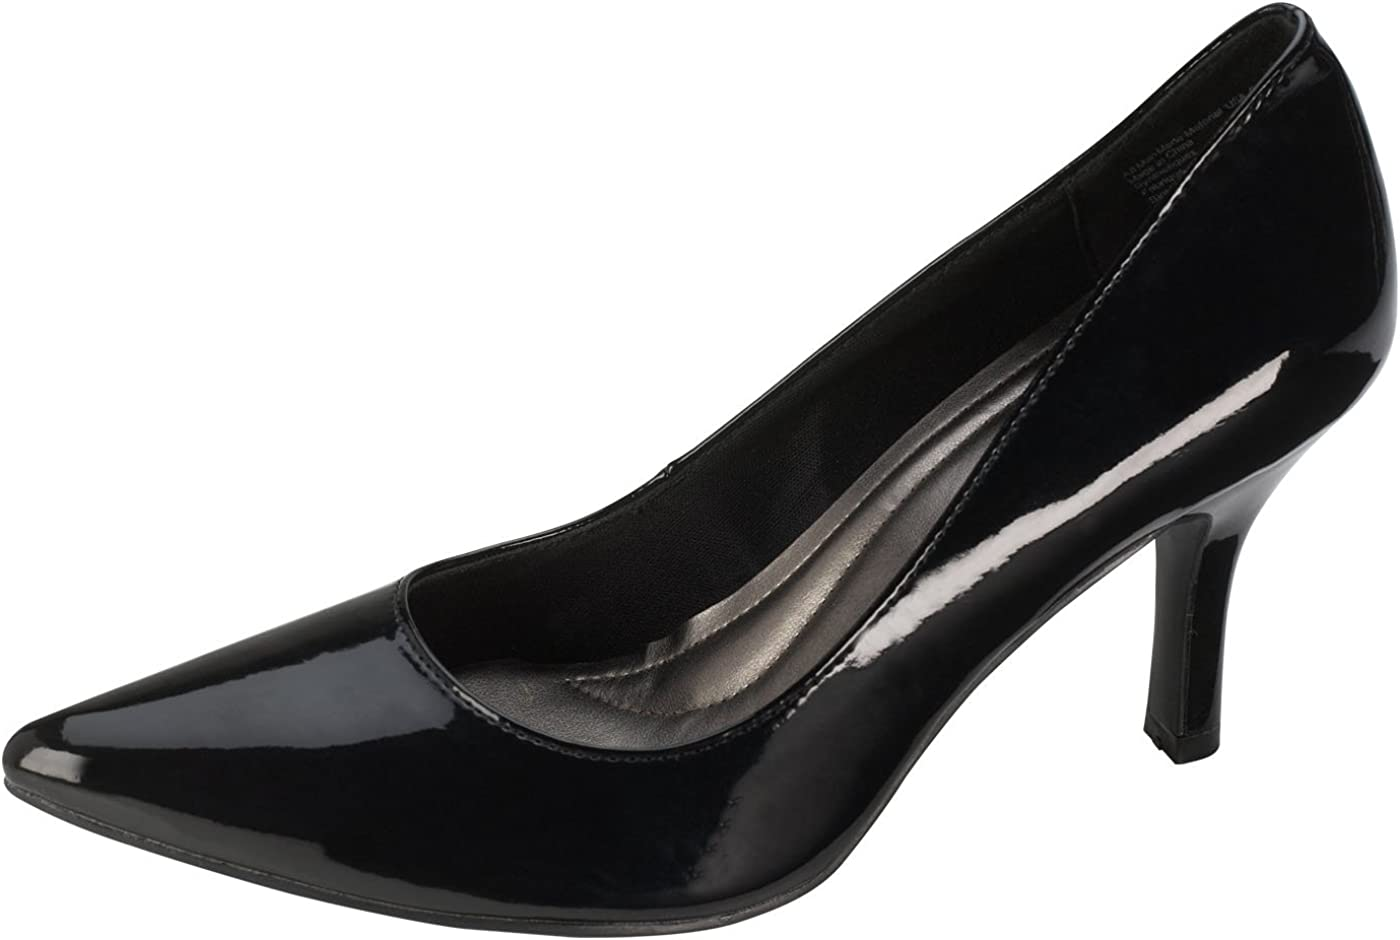 Predictions Comfort Plus Women's Pointy Janine Max 73% OFF Max 49% OFF Pump Toe